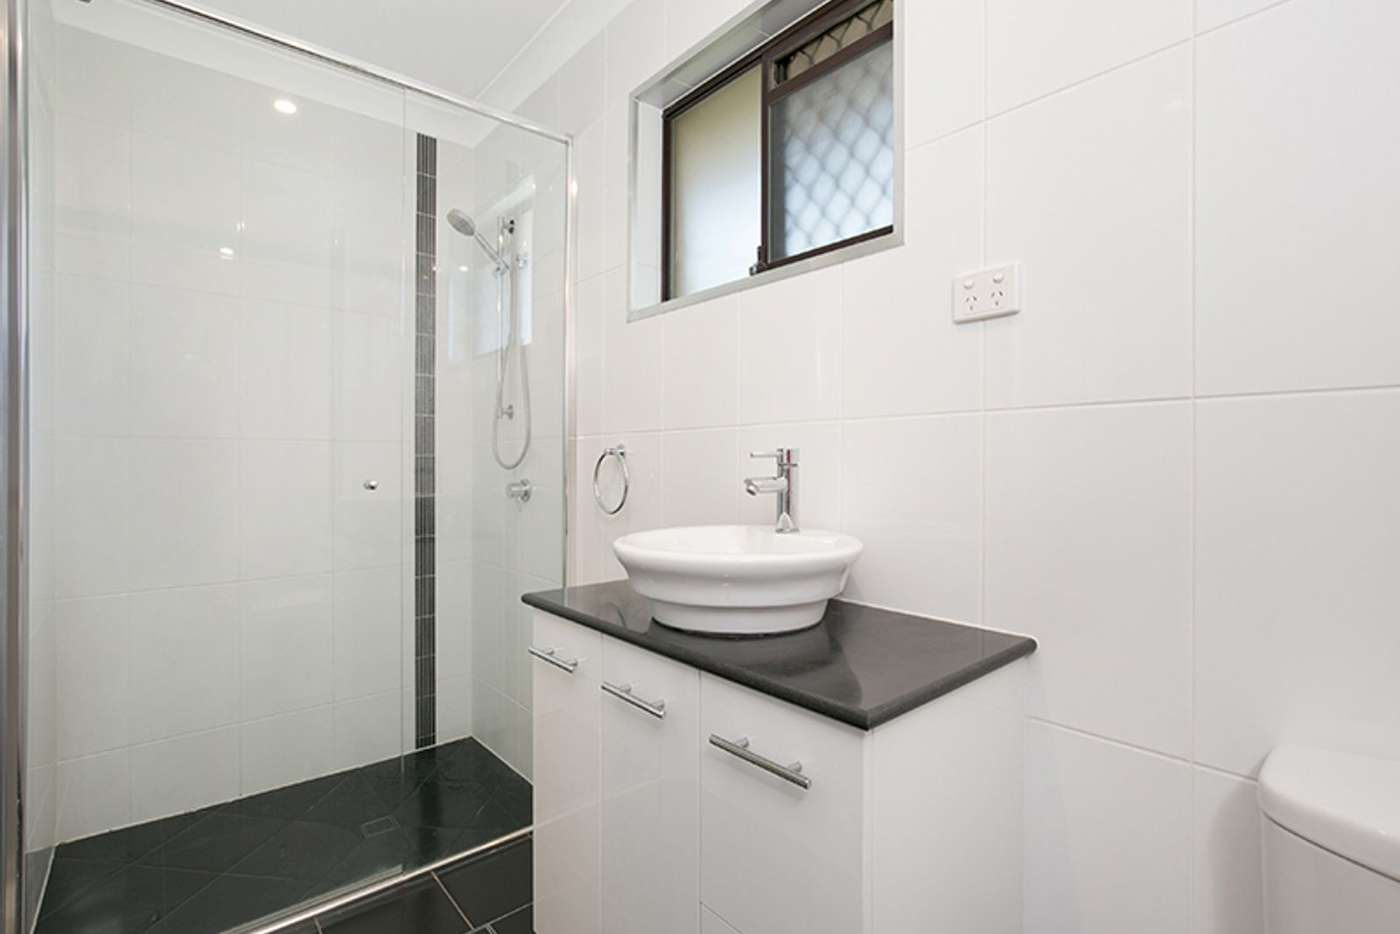 Sixth view of Homely house listing, 38 BARBARALLA DR, Springwood QLD 4127